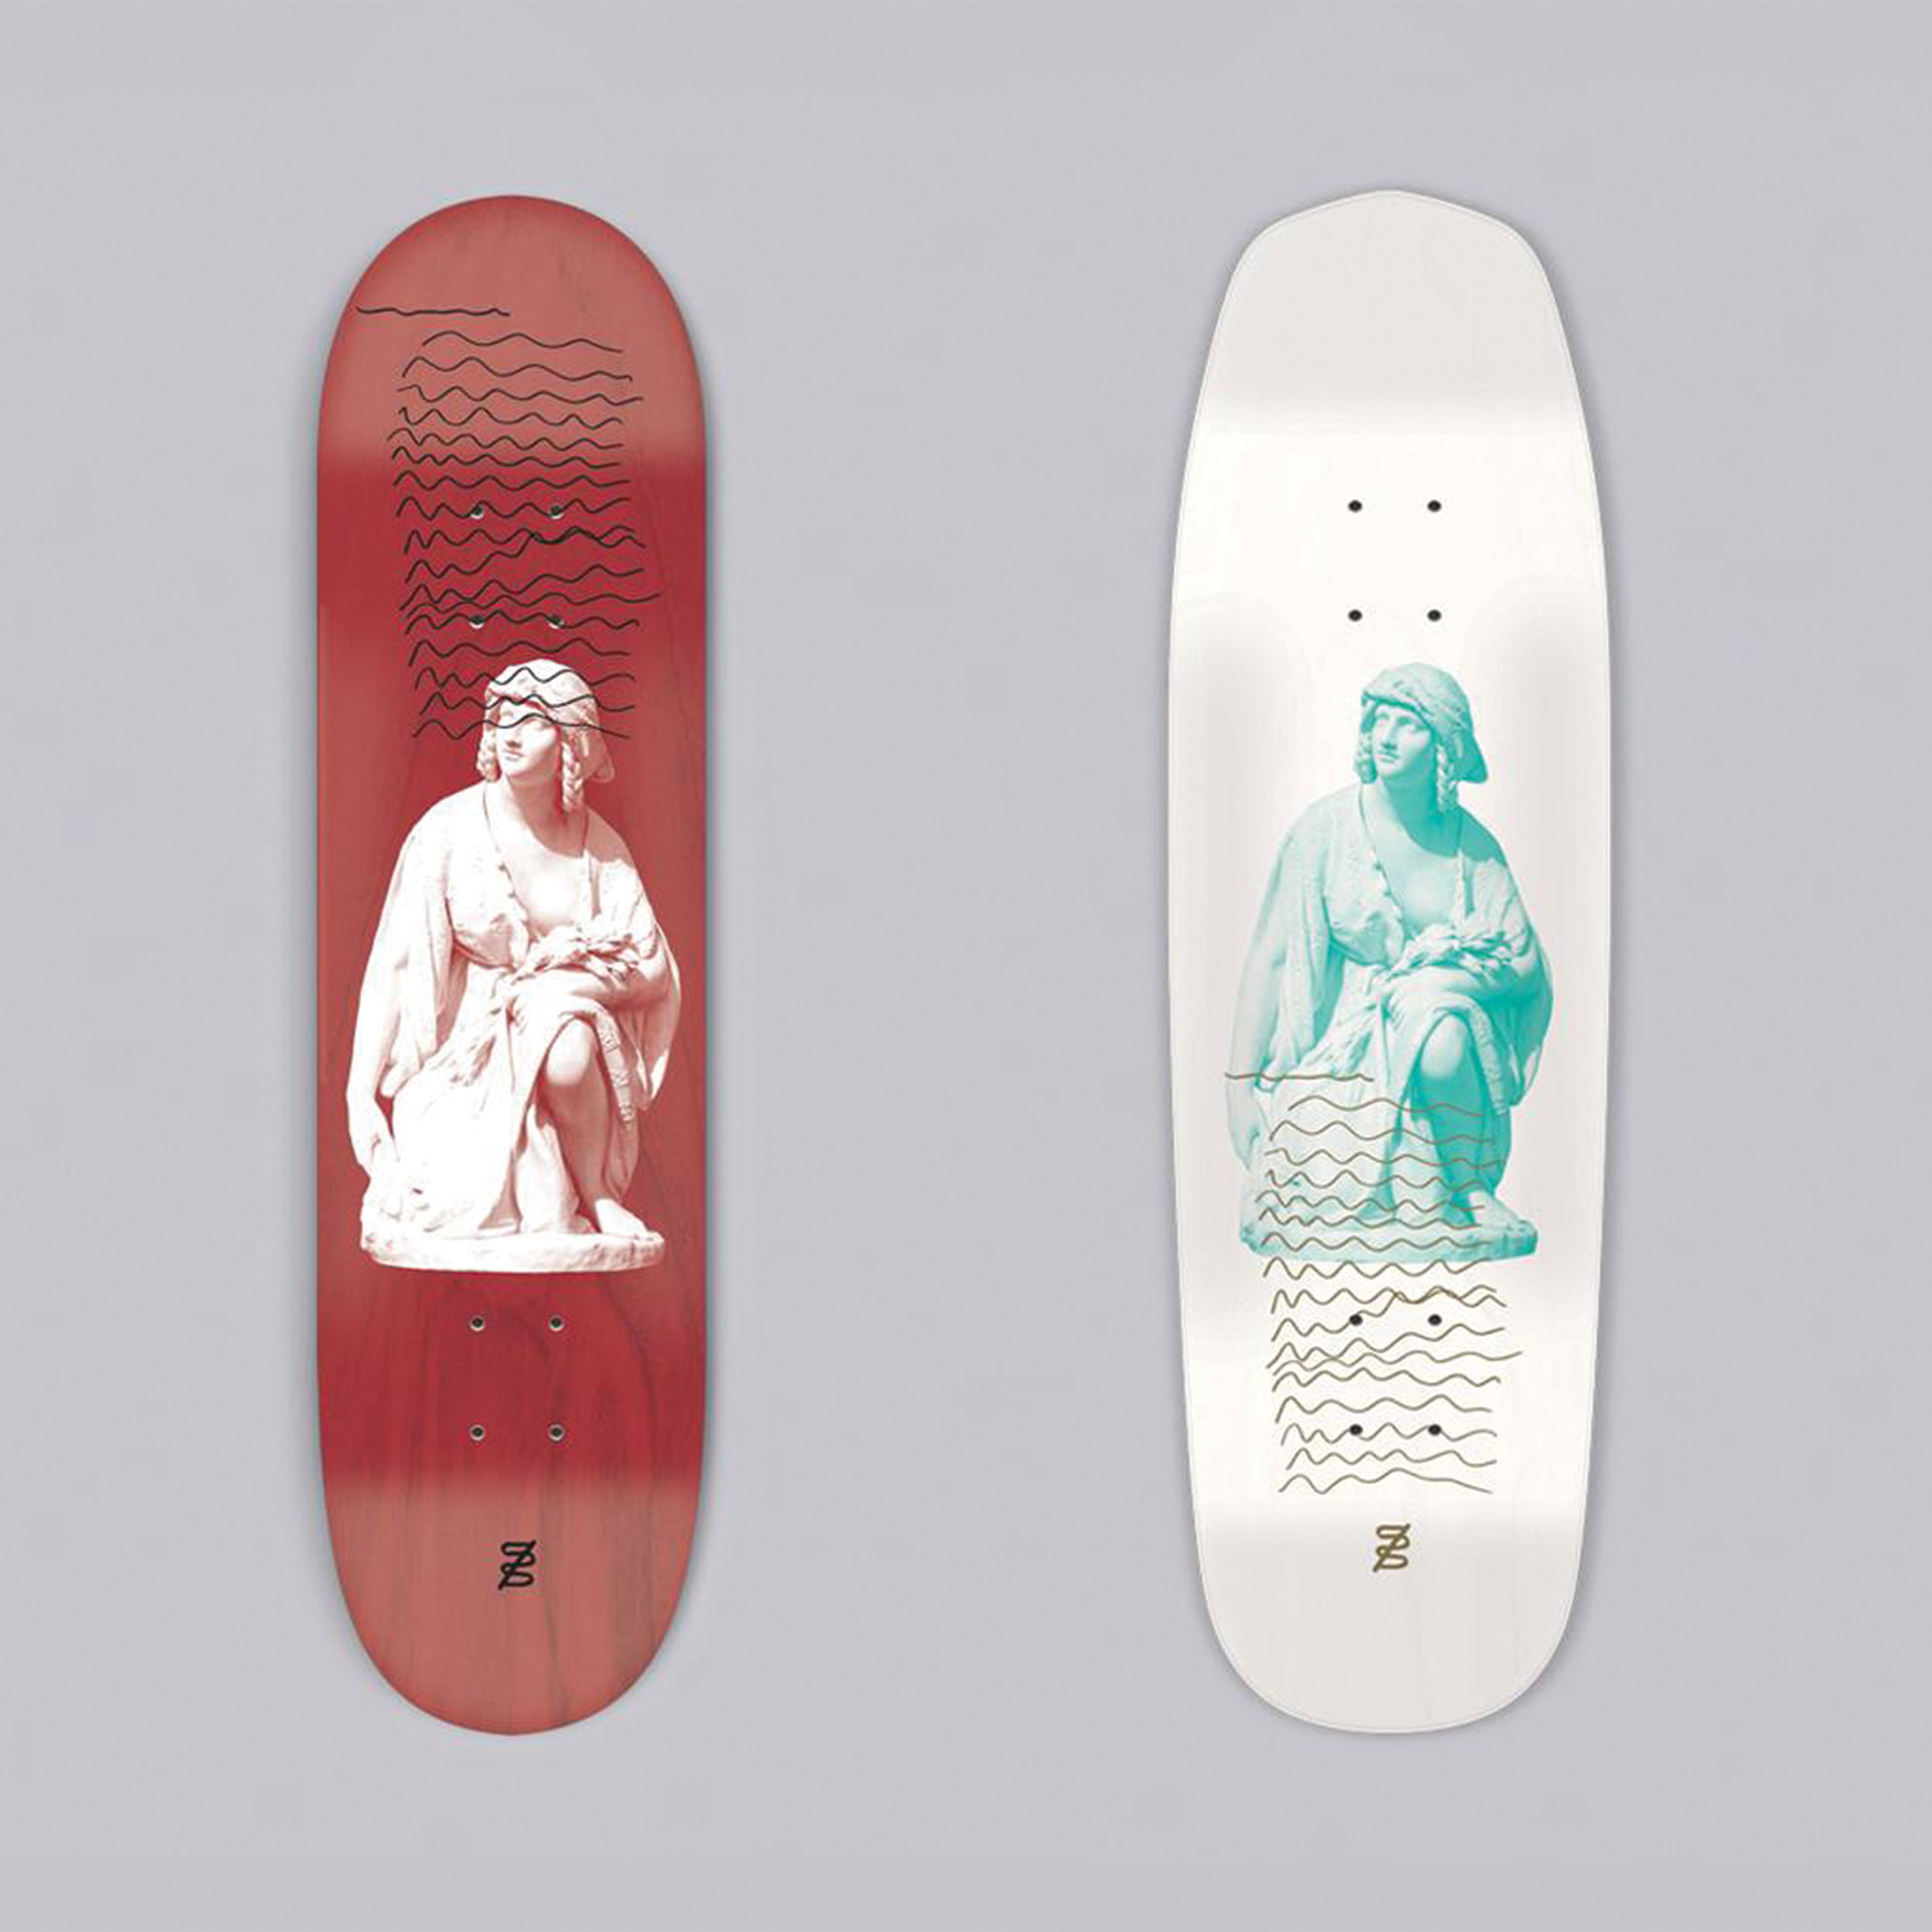 Studio Skate Supply - Shop our team decks here.